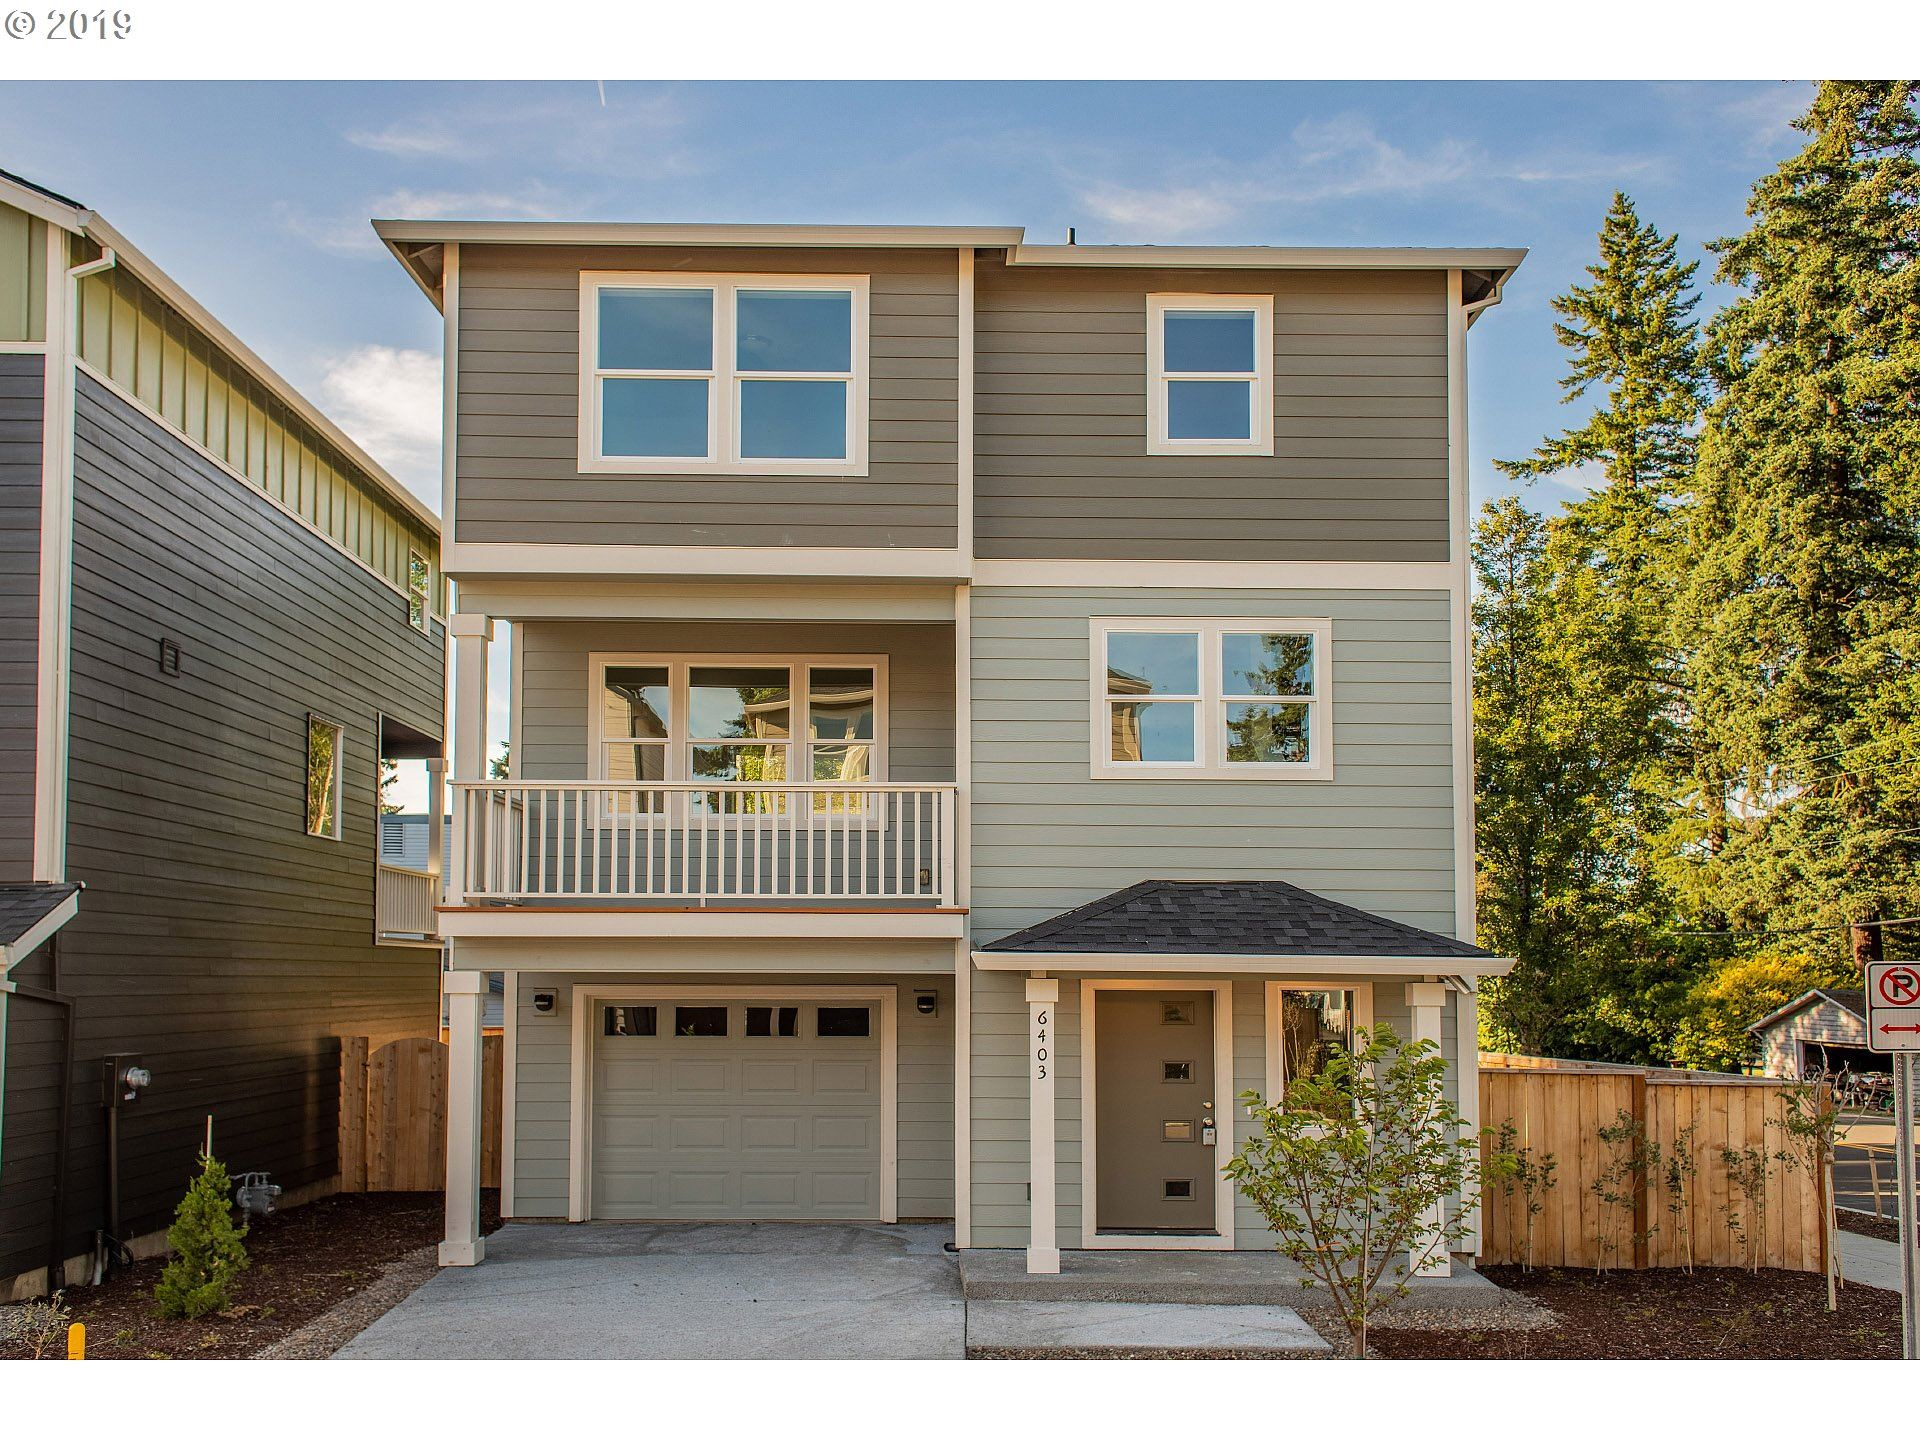 6427 SE 134TH AVE, Portland, OR 97236 - MLS#: 19437083